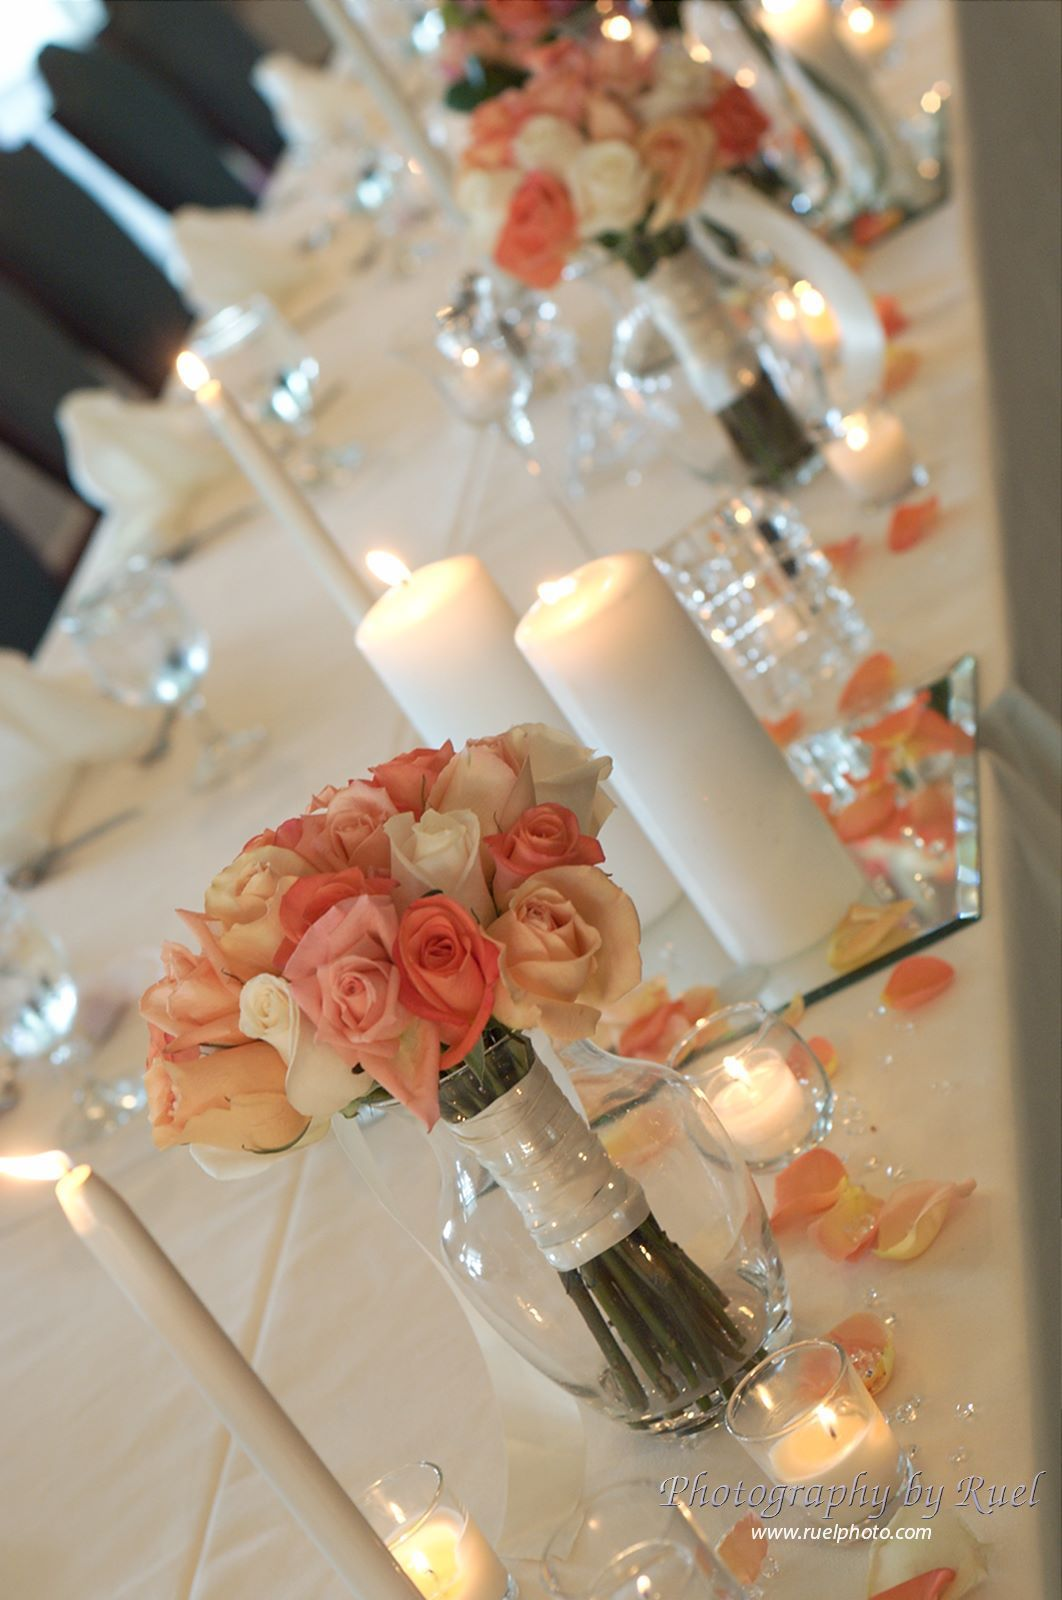 Head table decor in peach and pink designed by melissa head table decor in peach and pink designed by melissa junglespirit Image collections